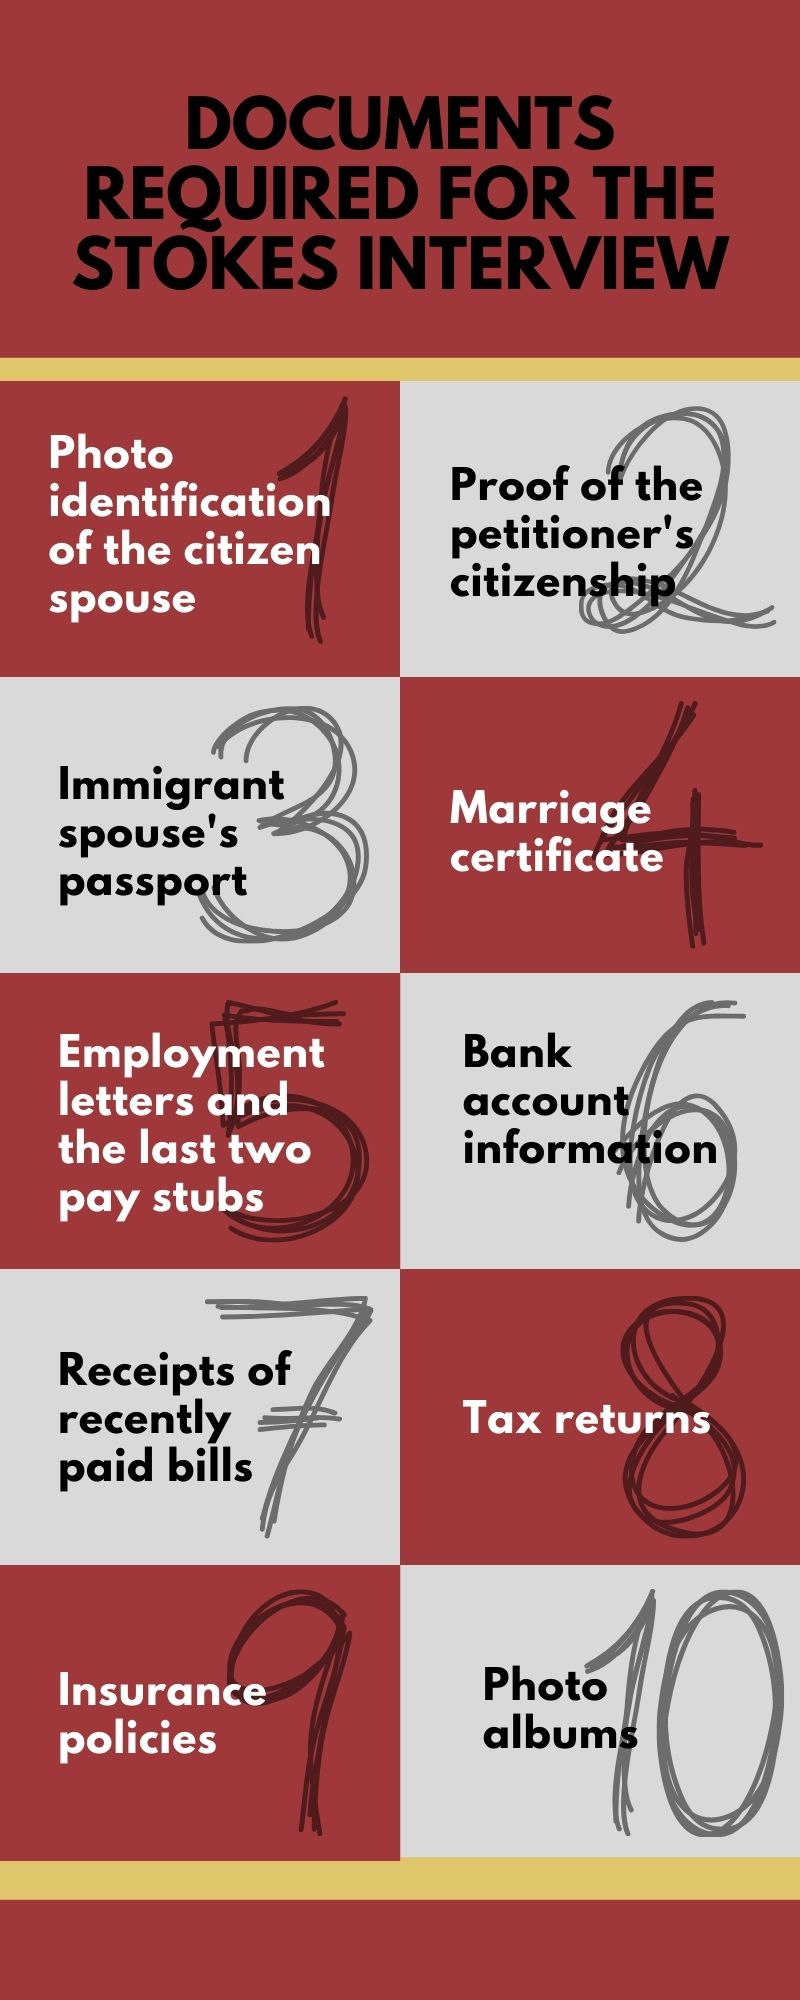 Infographic: Documents required for the Stokes Interview. Photo identification of the citizen spouse, proof of the petitioner's citizenship, immigrant spouse's passport, marriage certificate, employment letters and the last two pay stubs, bank account information, receipts of recently paid bills, tax returns, insurance policies, photo albums.